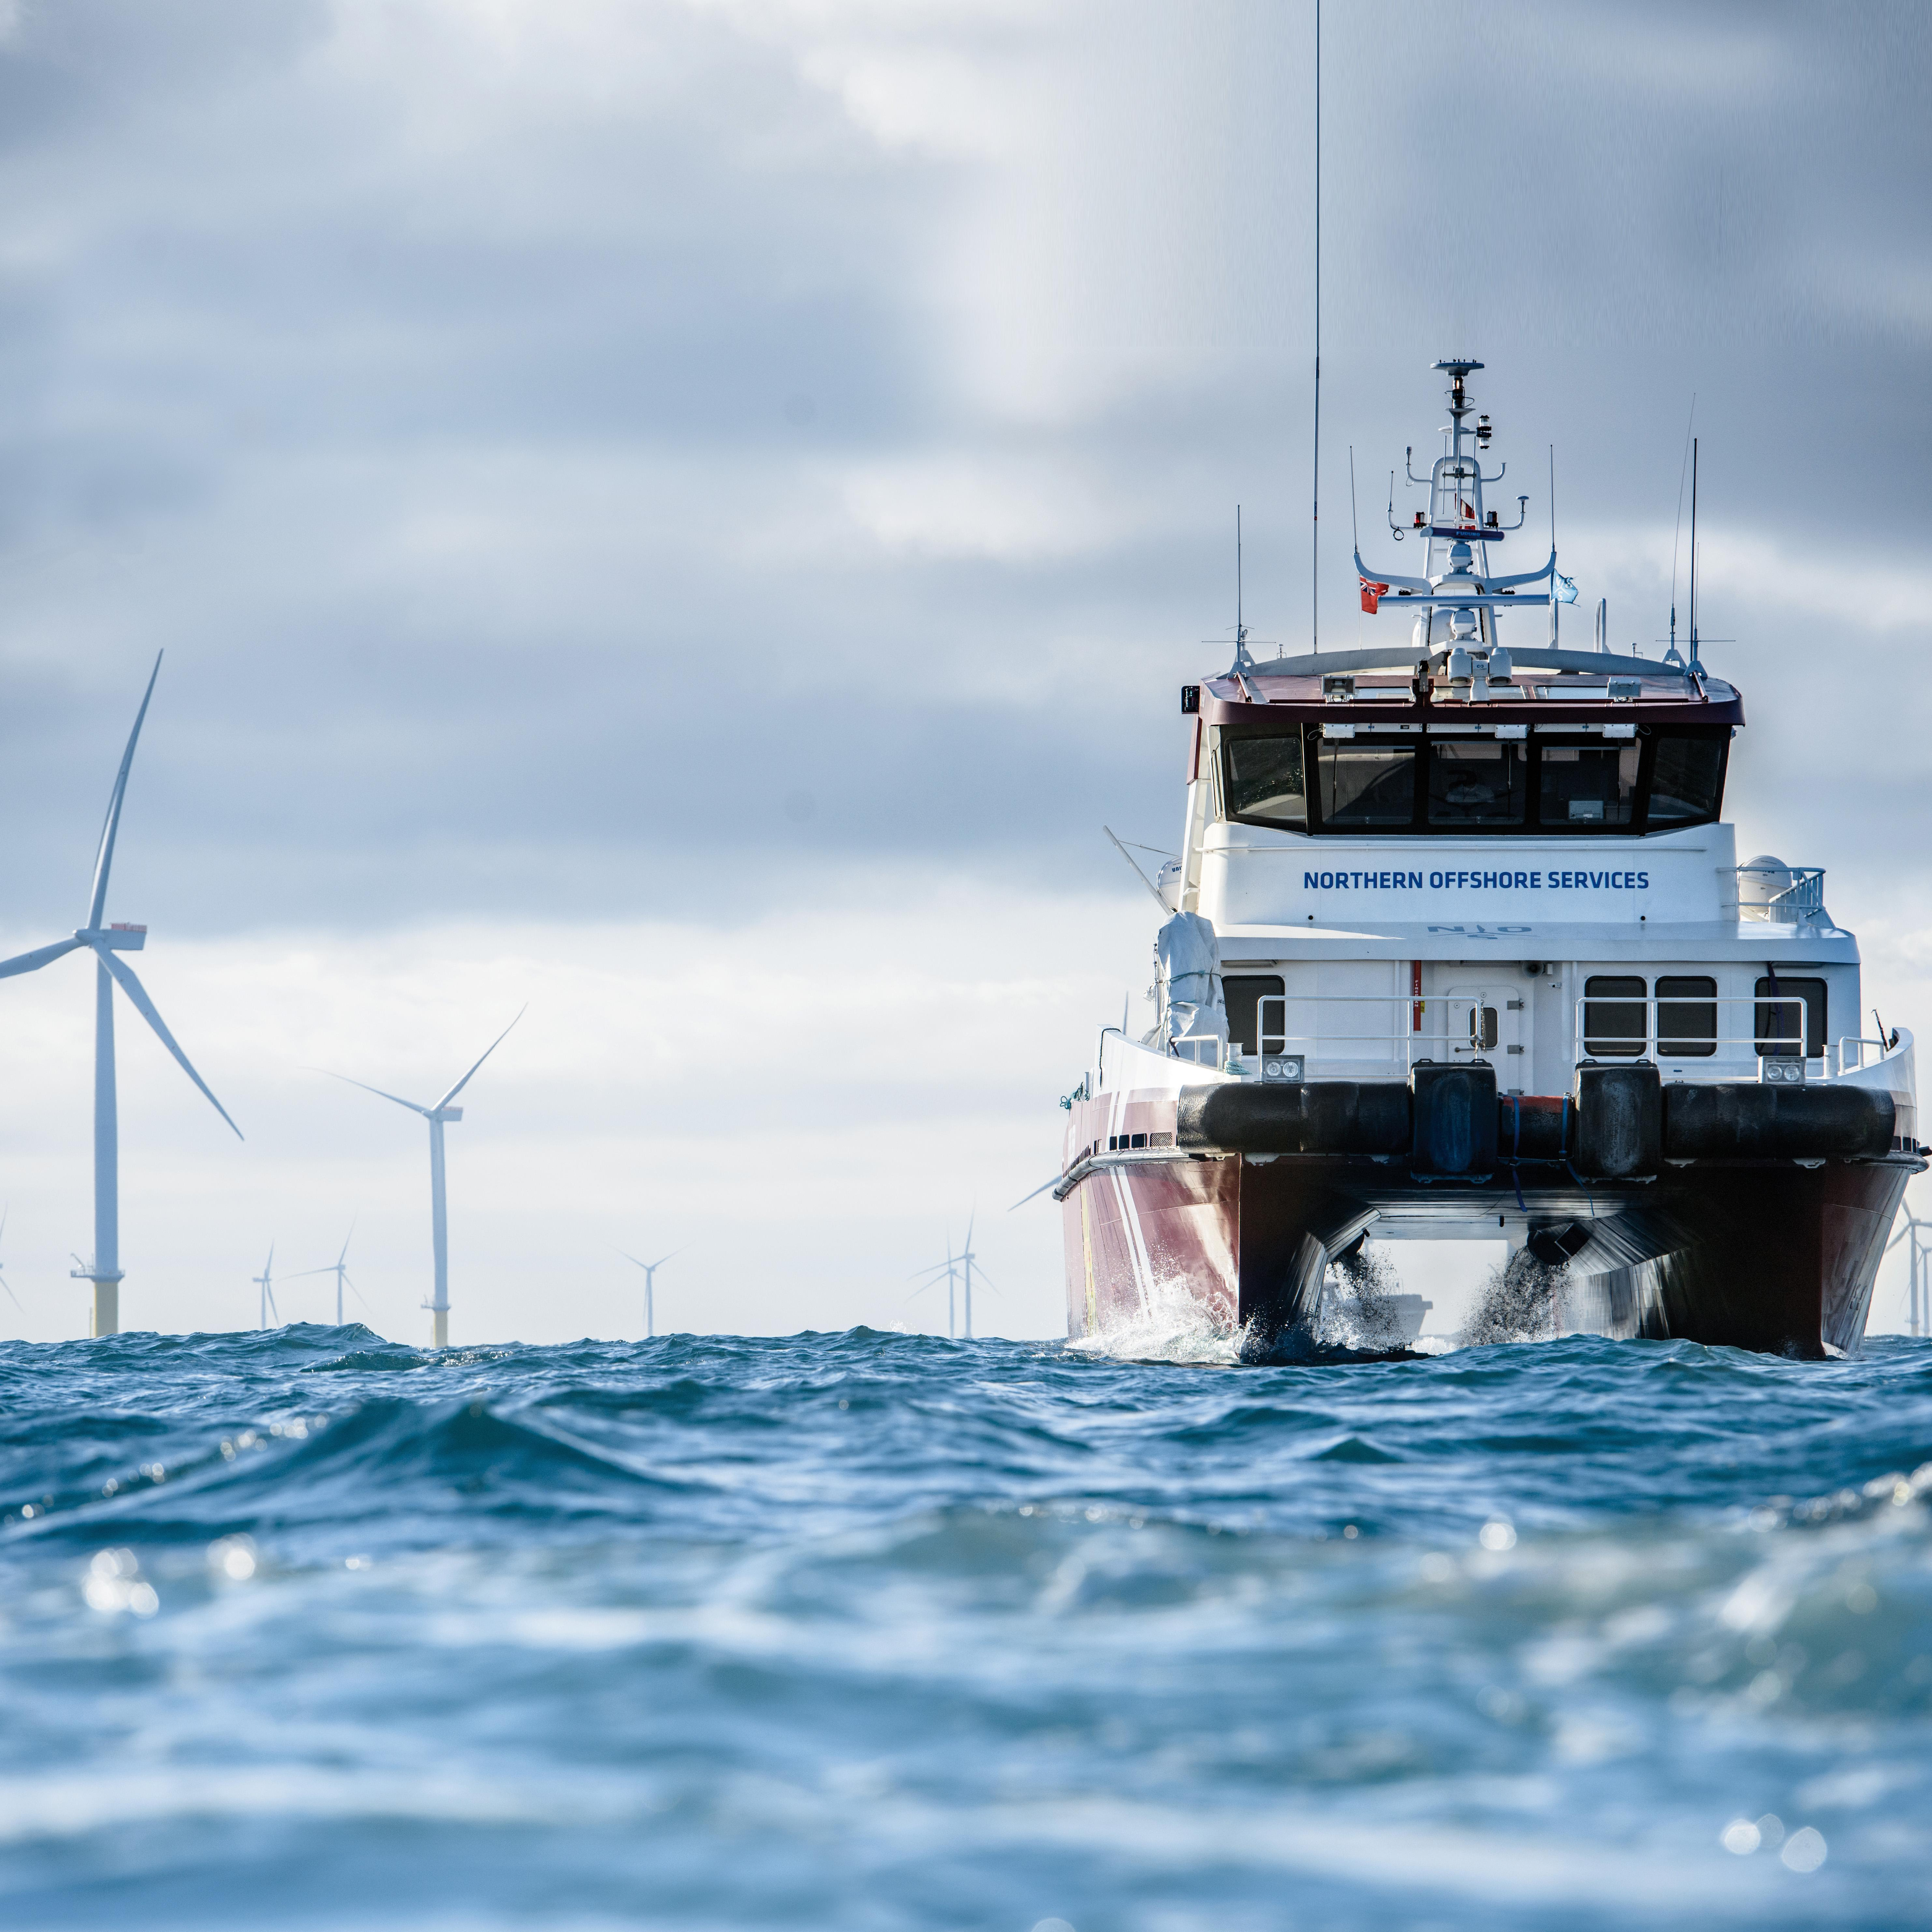 Europort abstract on maritime solutions for offshore renewable energy